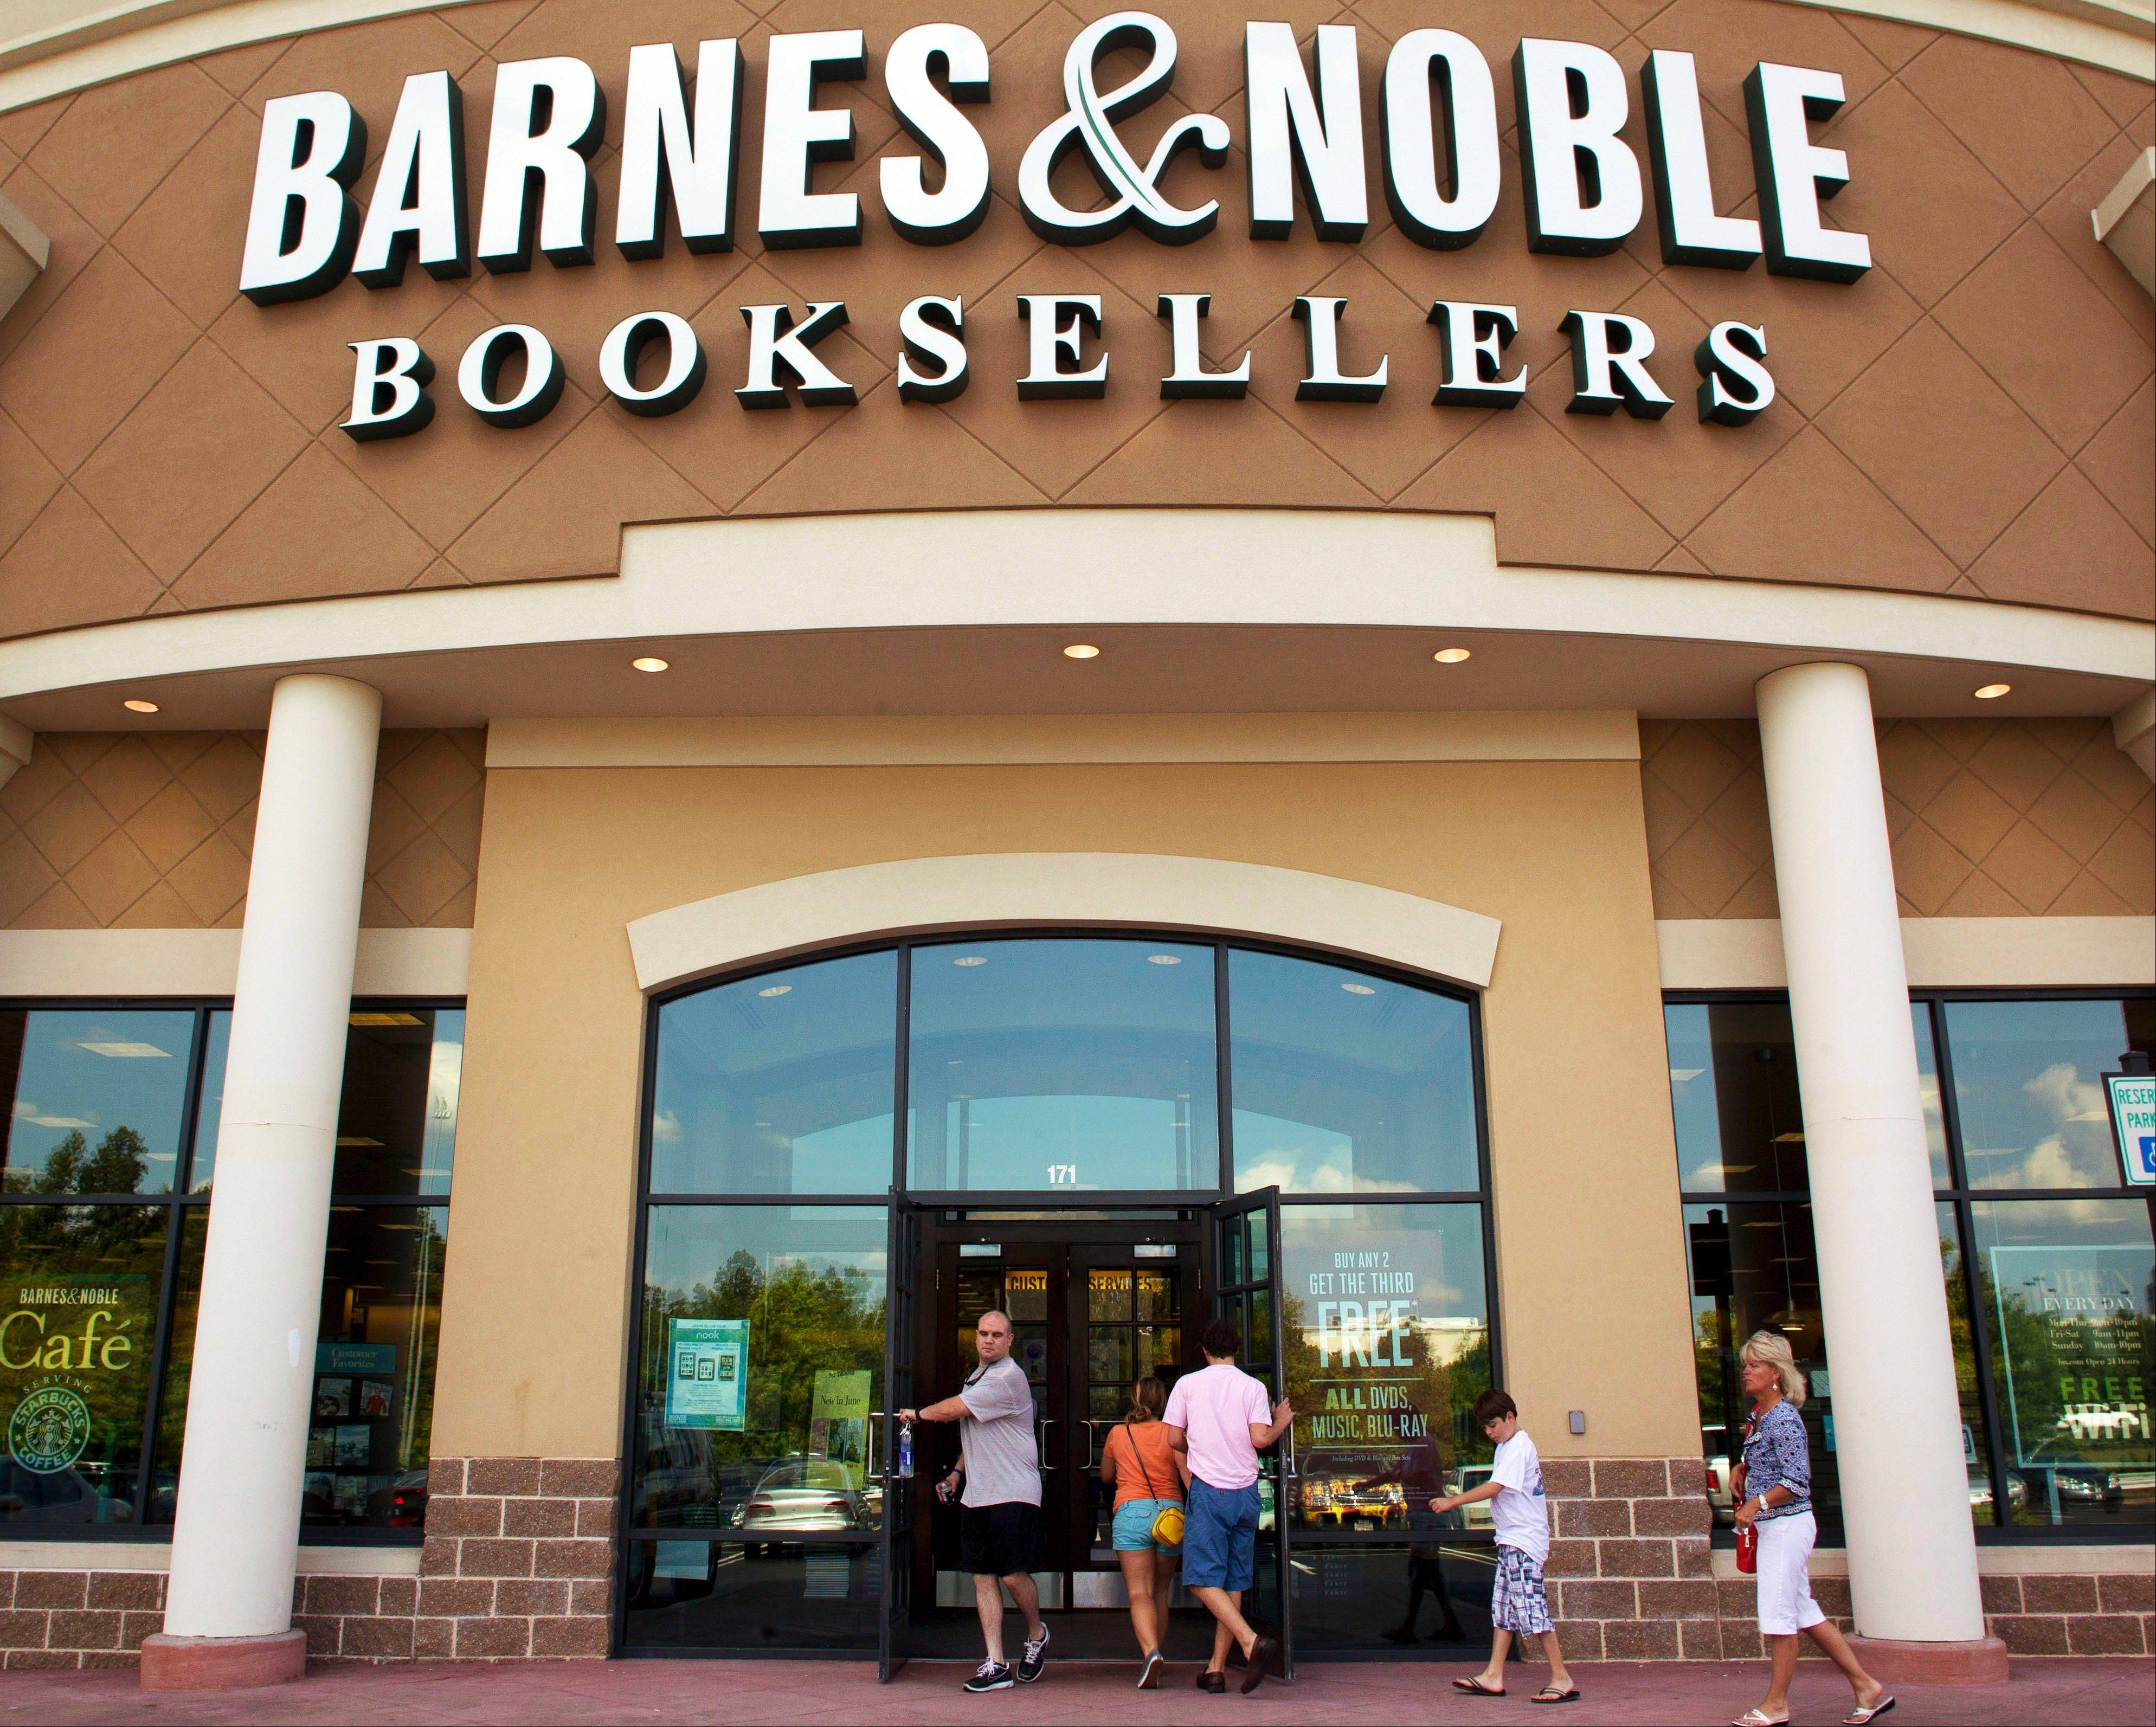 Barnes & Noble Chairman Leonard Riggio has told the book seller he is going to try to buy the company's retail business.